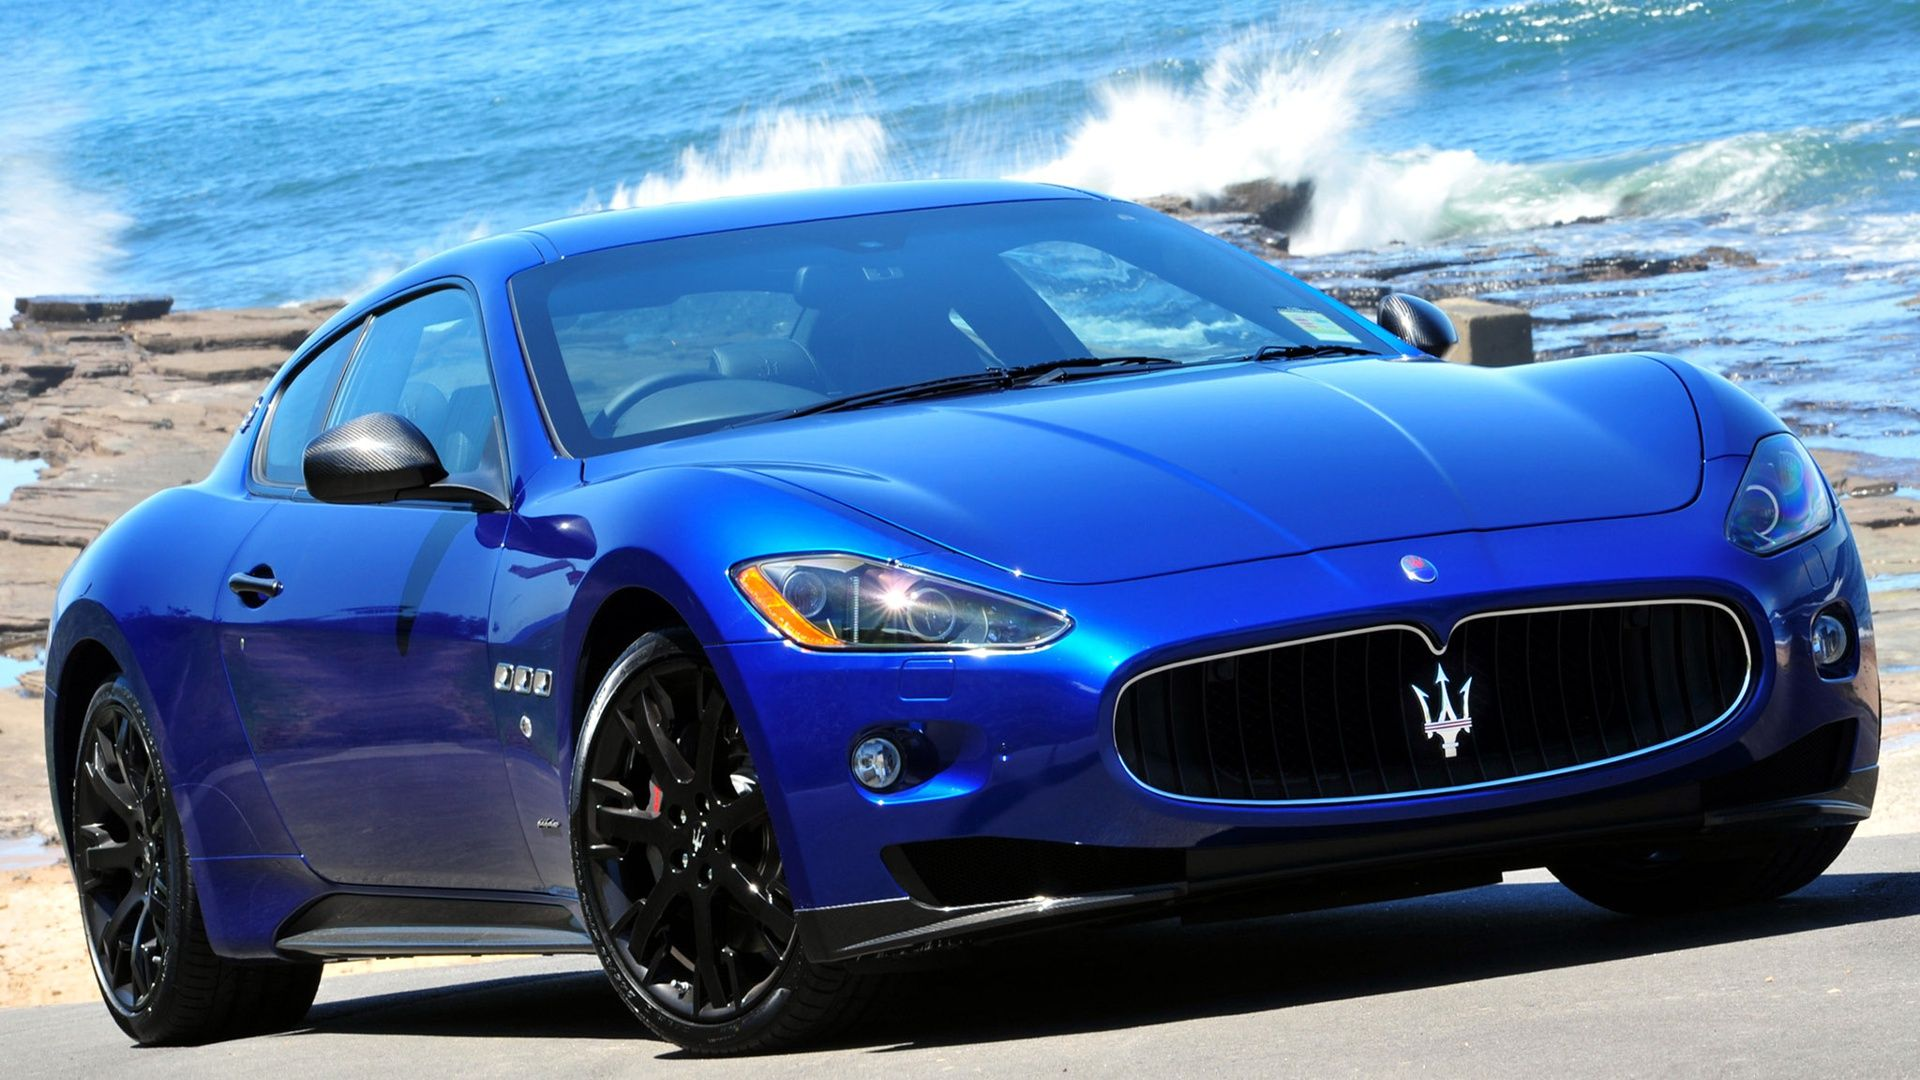 Maserati GranTurismo S MC in blue best pictures hd wallpapers ...